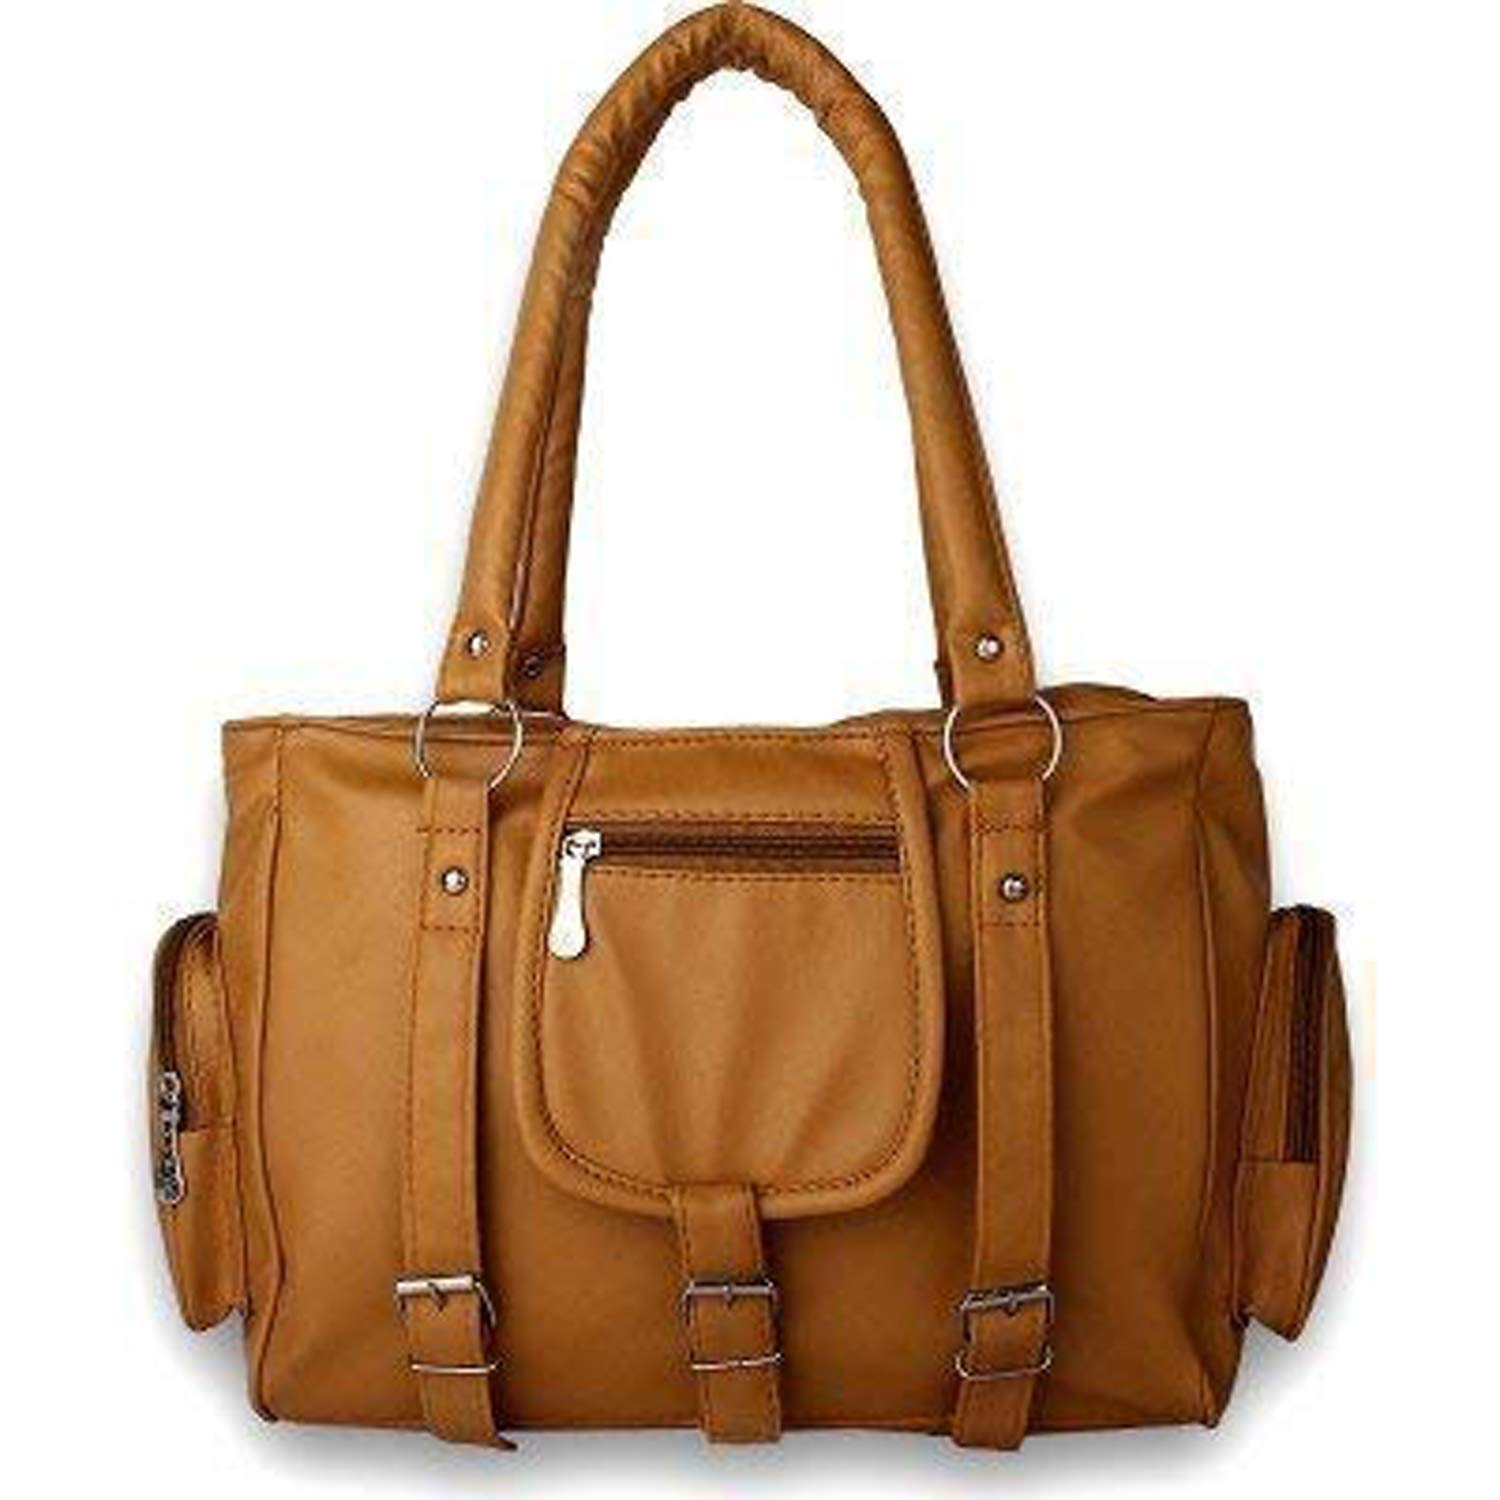 M.S ZONE Women's PU Leather Handbag (CKRK101, Mustard) (Today Offer Deal of the Day)